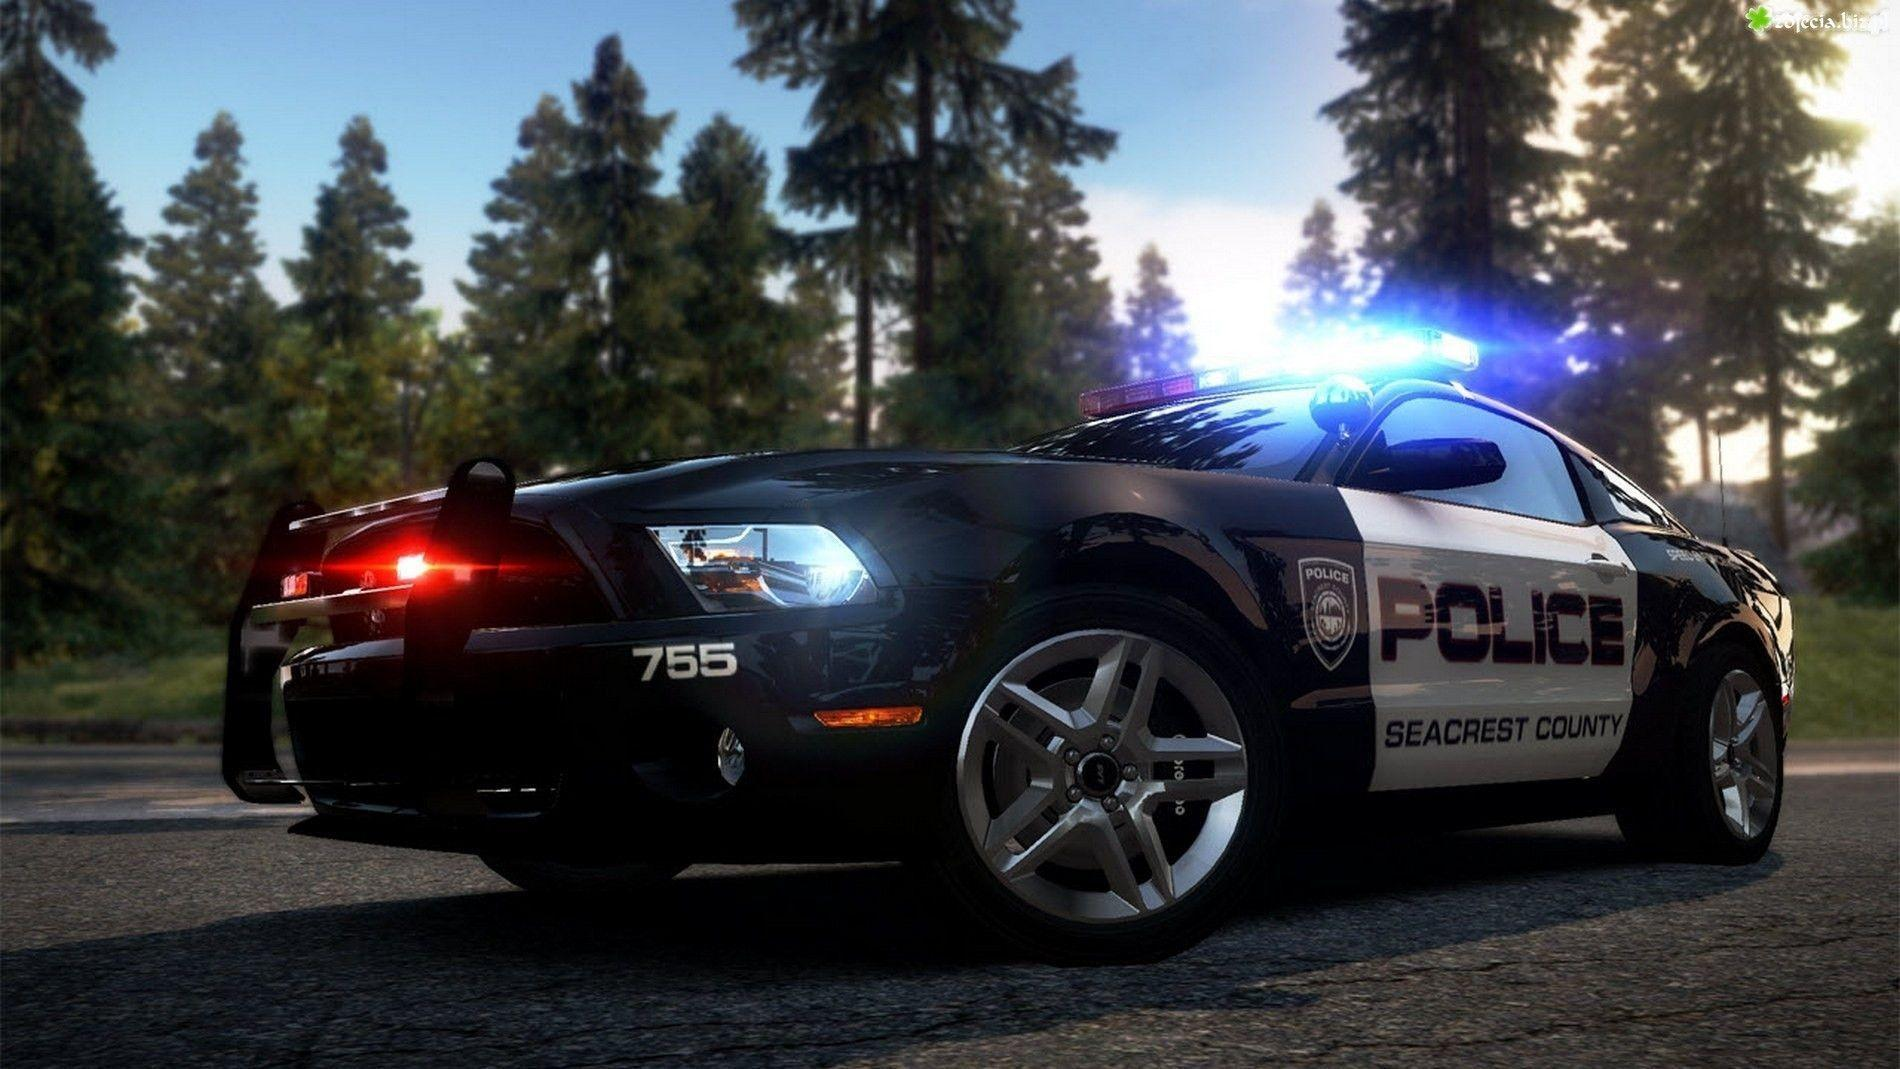 Police Car Wallpapers Wallpaper Cave